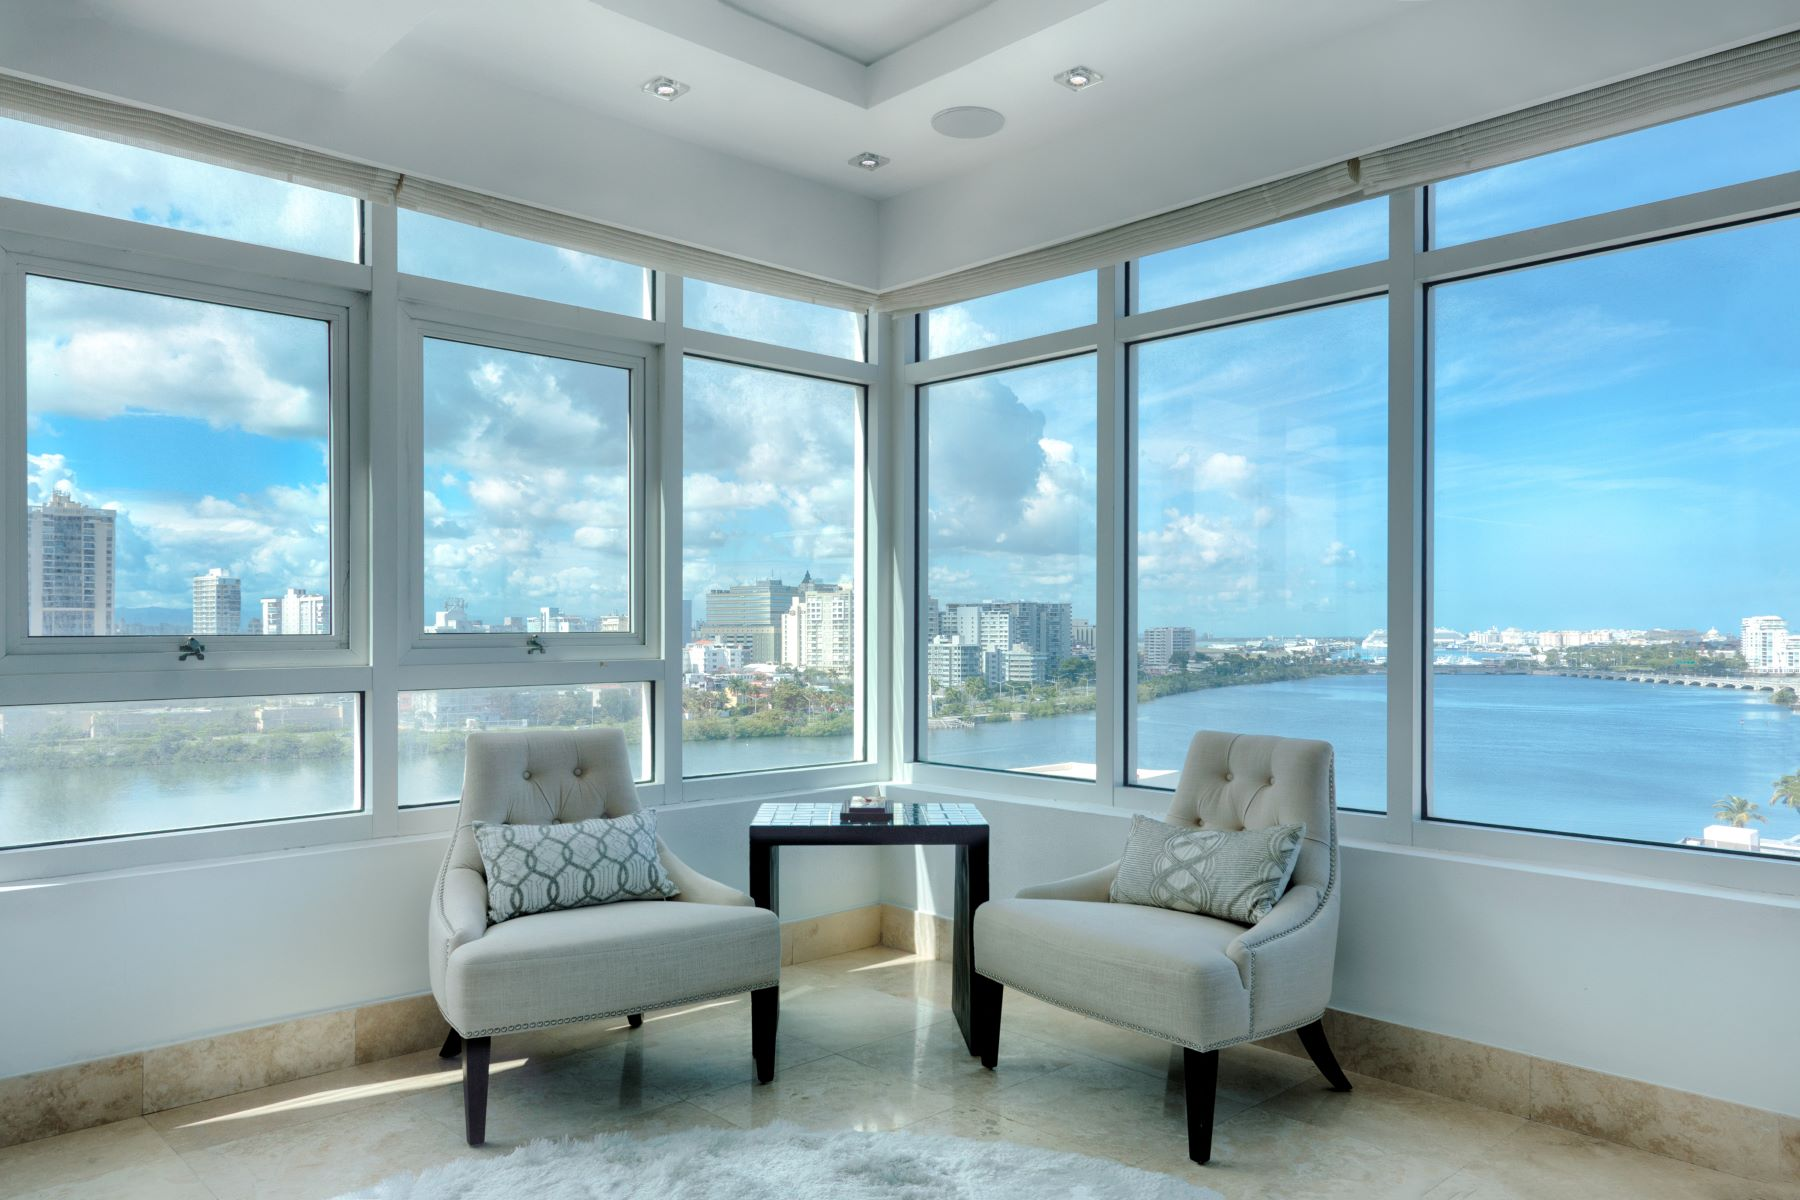 Additional photo for property listing at Lavish Seaside Residence at The Bristol 1052 Ashford Ave. Apt. 10-C San Juan, 00907 Puerto Rico